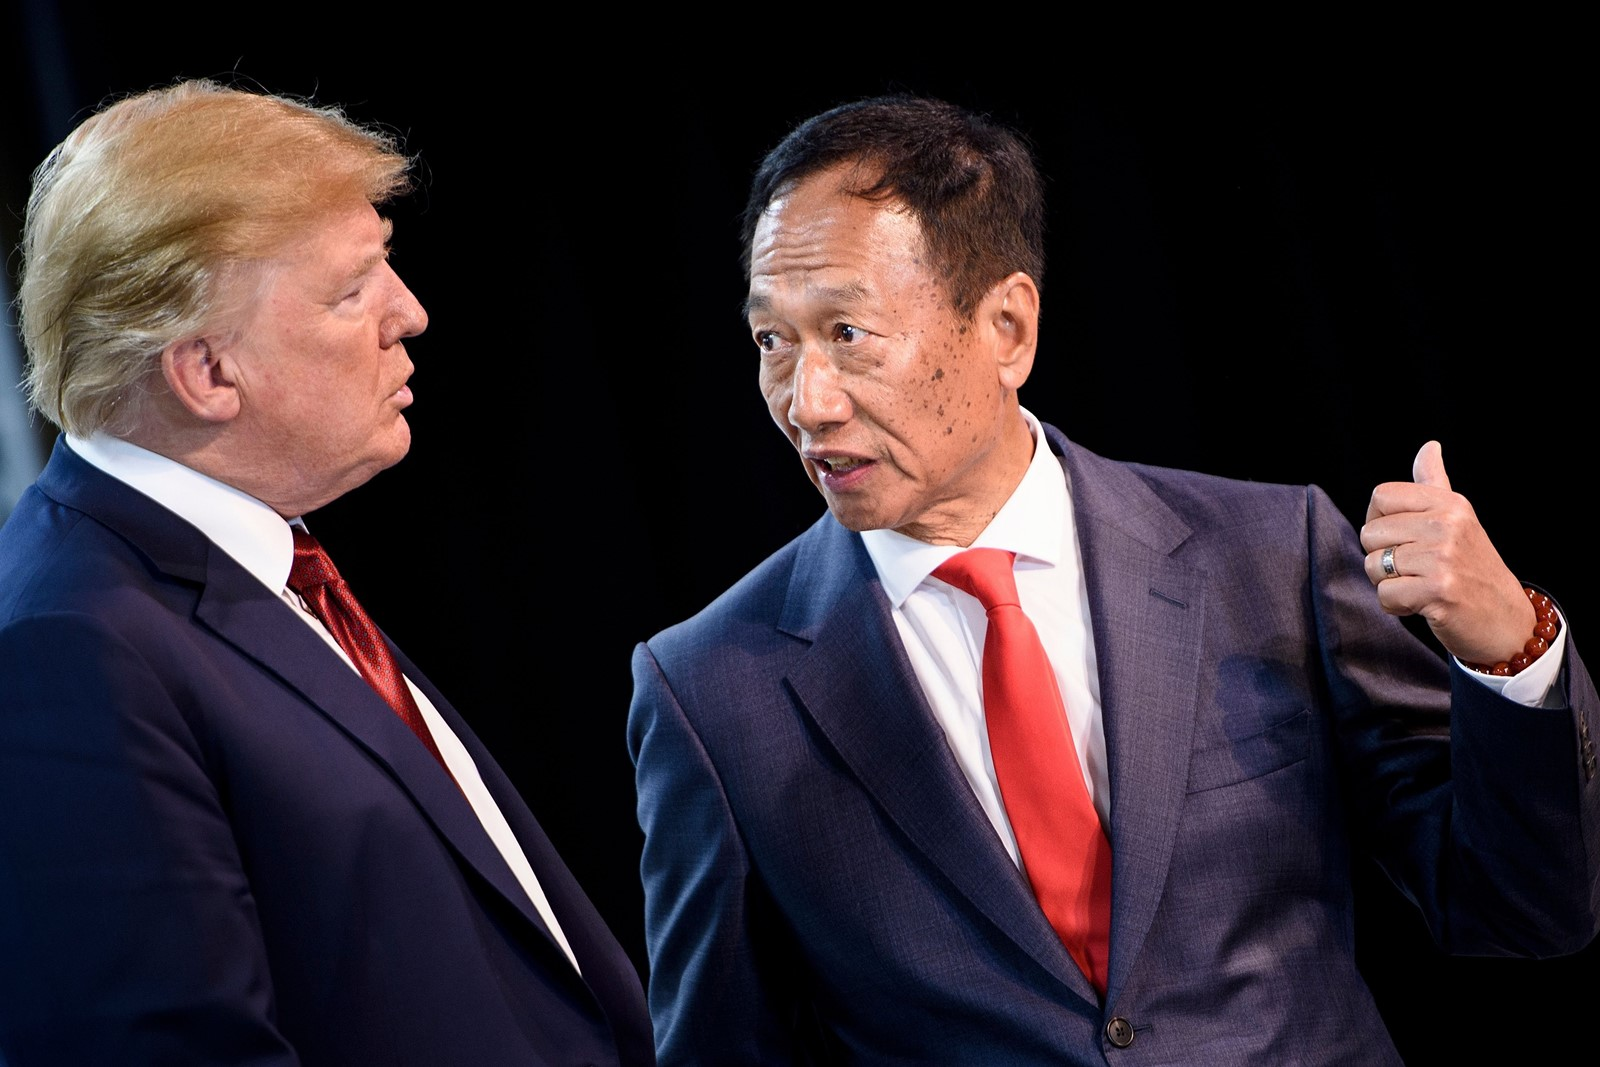 Foxconn Chairman Terry Gou, right, and President Trump in Wisconsin on Thursday. — Photograph: Brendan Smialowski Agence France-Presse/Getty Images.